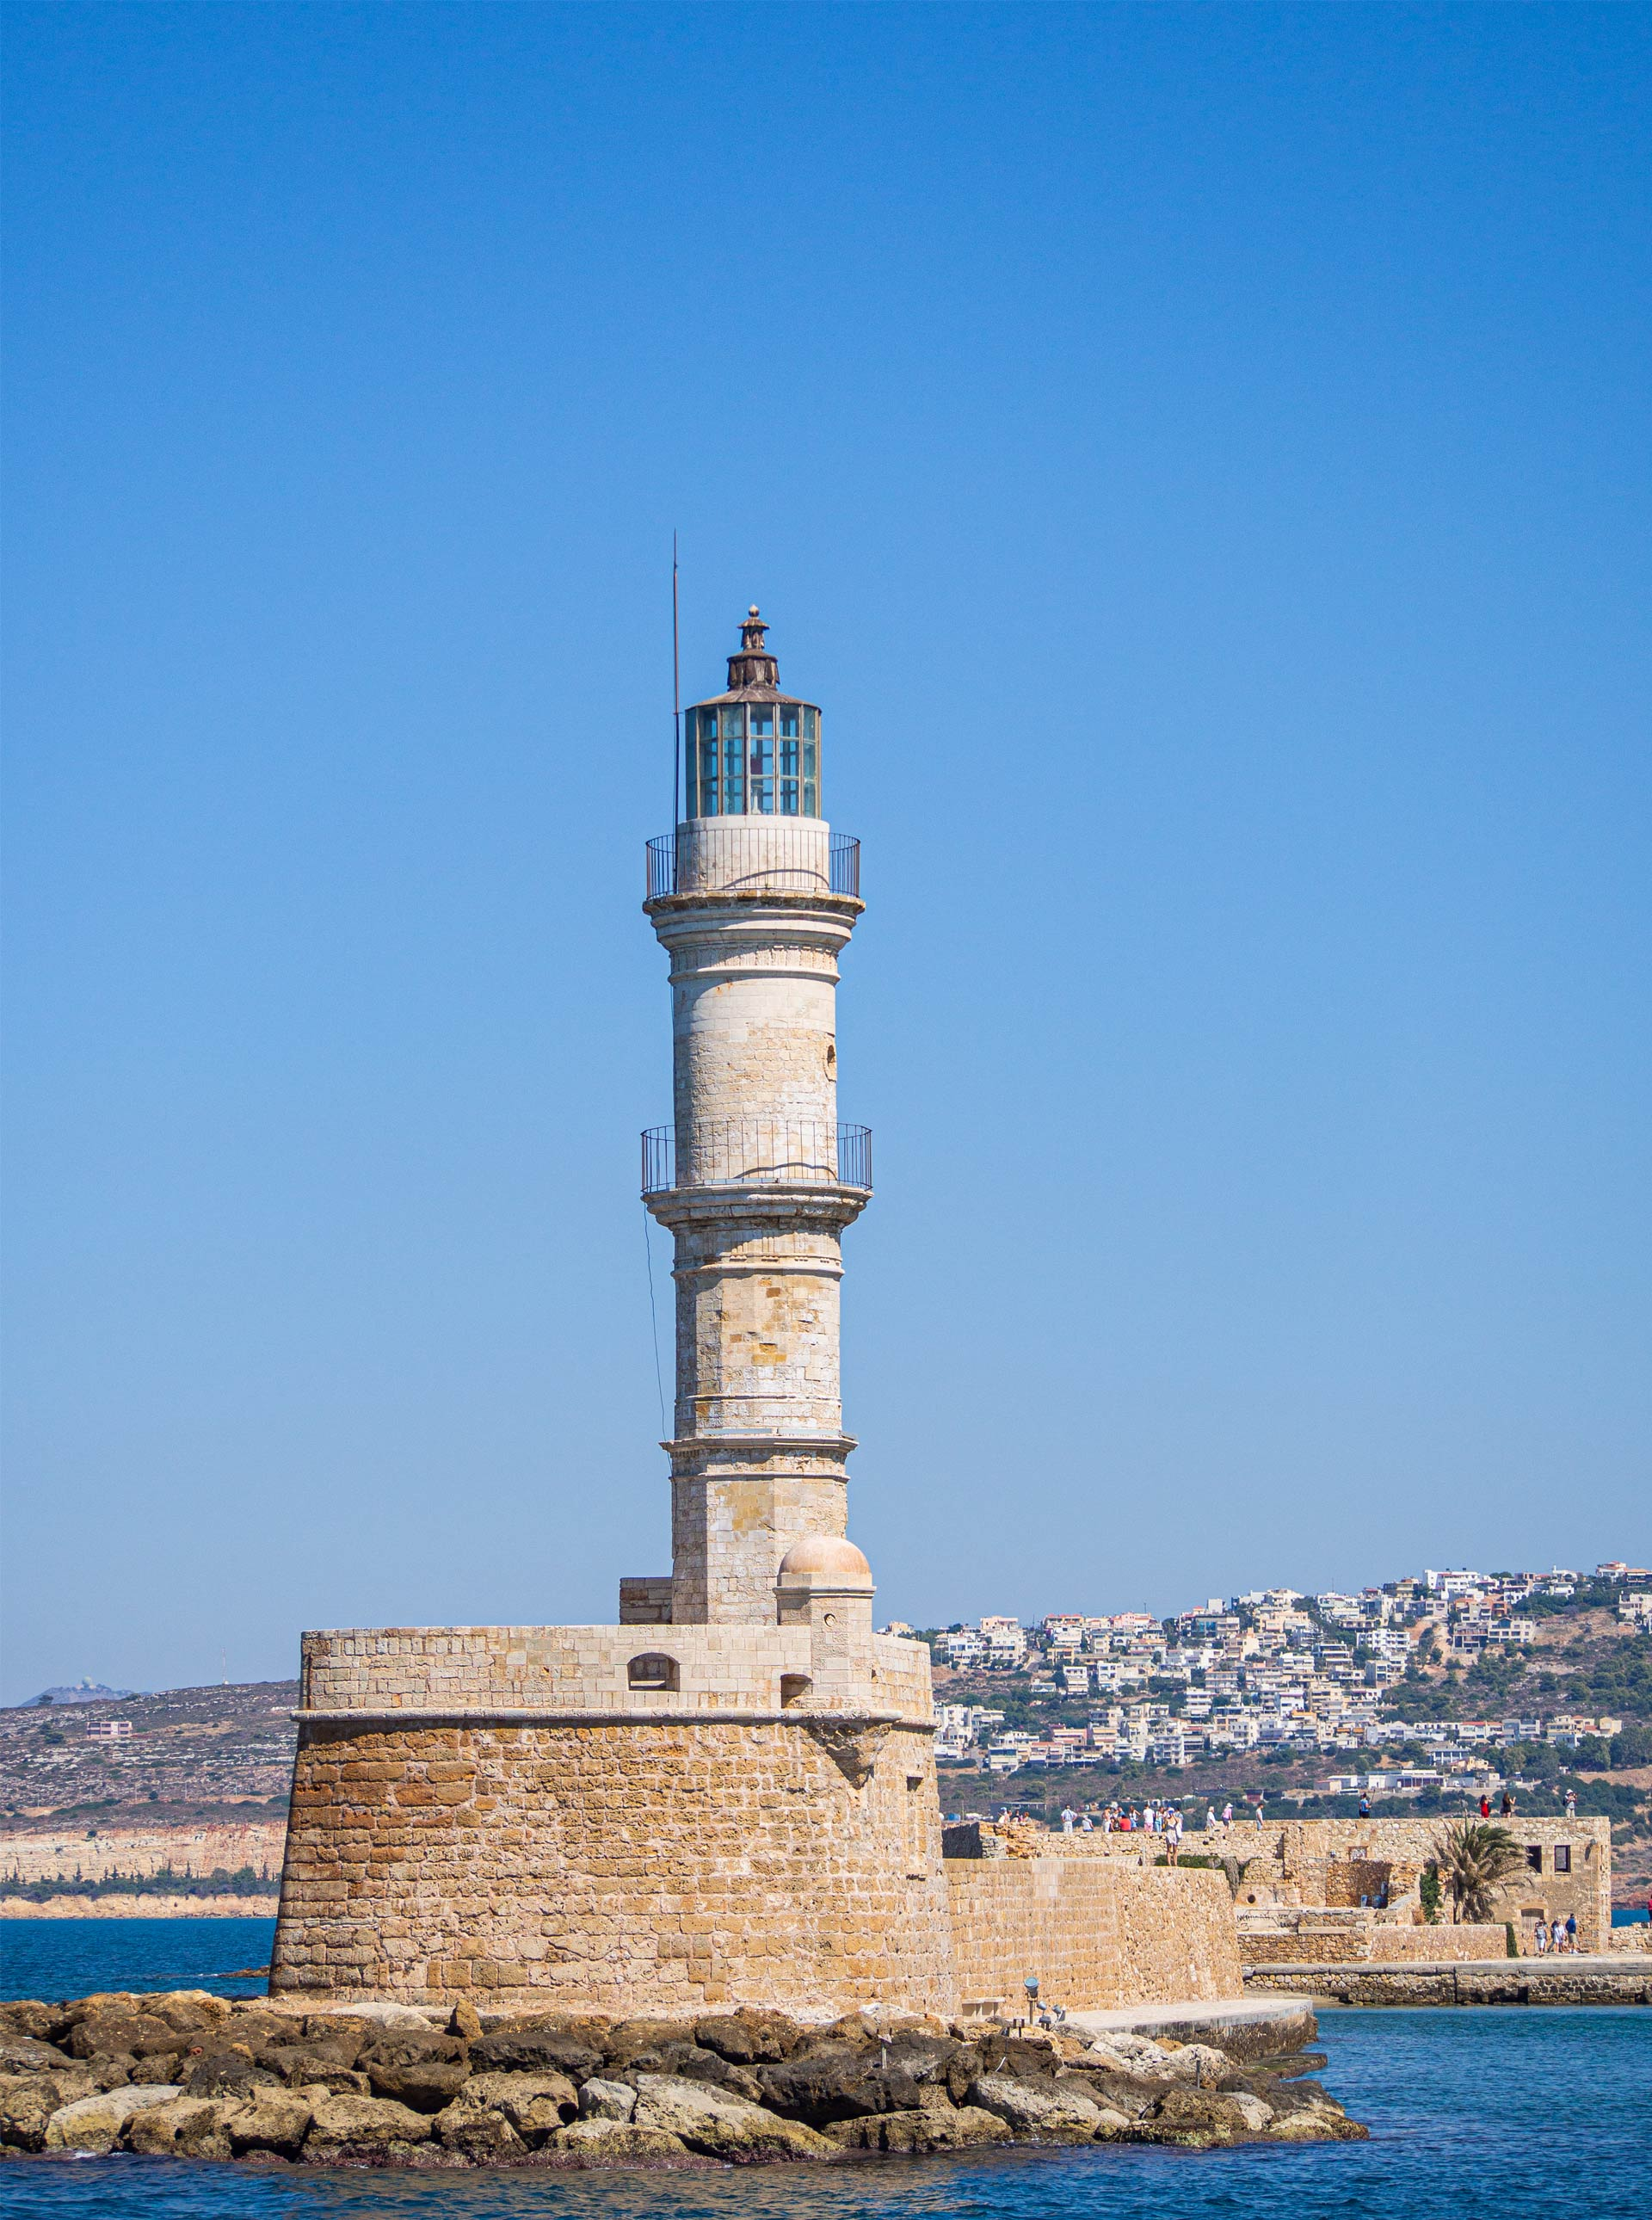 Chania Old Venetian Harbour Lighthouse, Crete